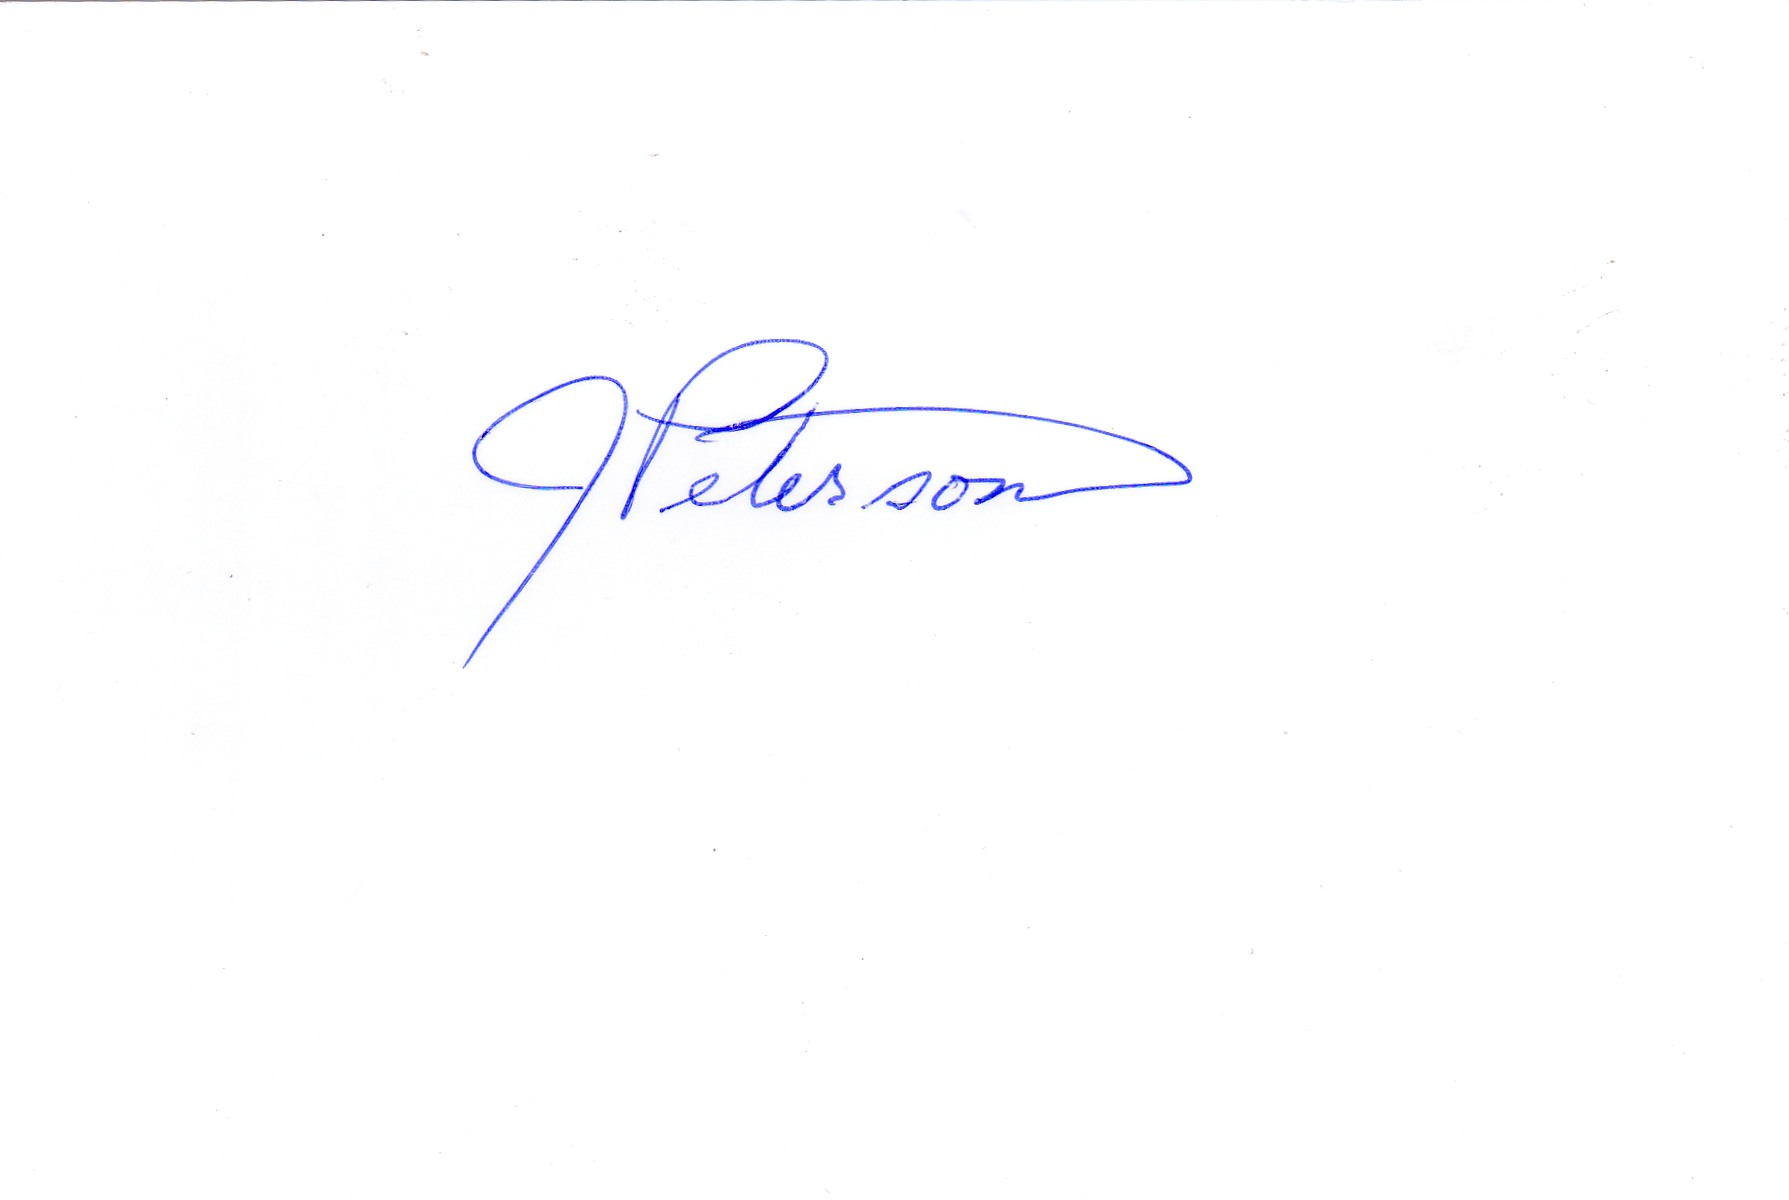 Jean Peterson's Signature